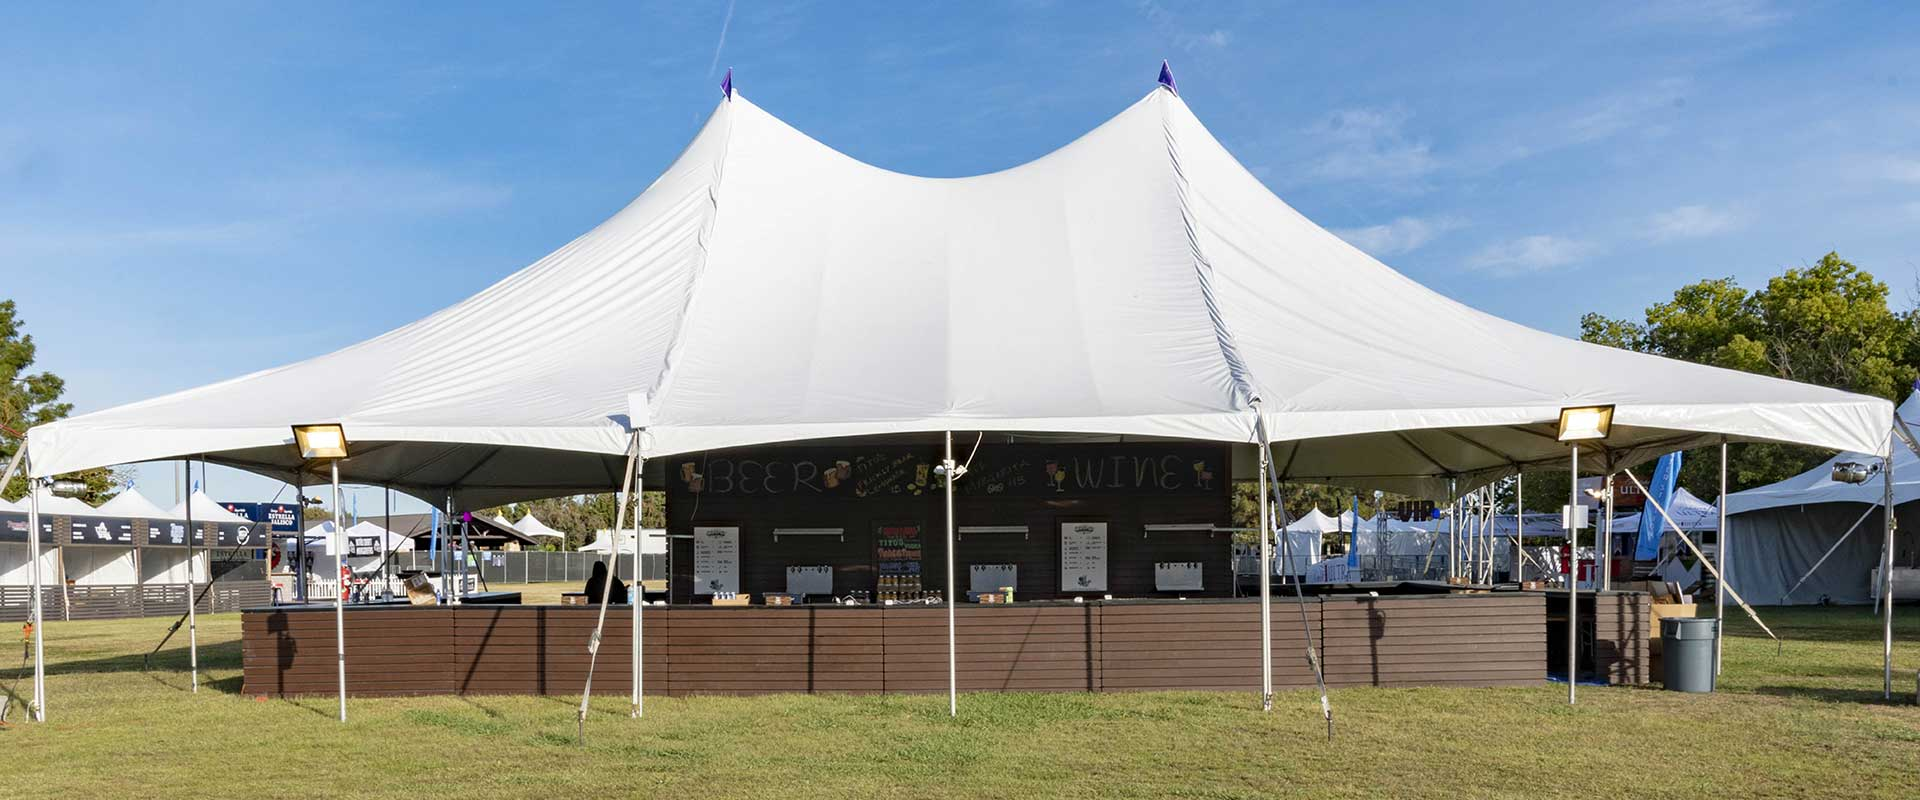 Event Rentals in Fresno, Clovis, and the Central Valley